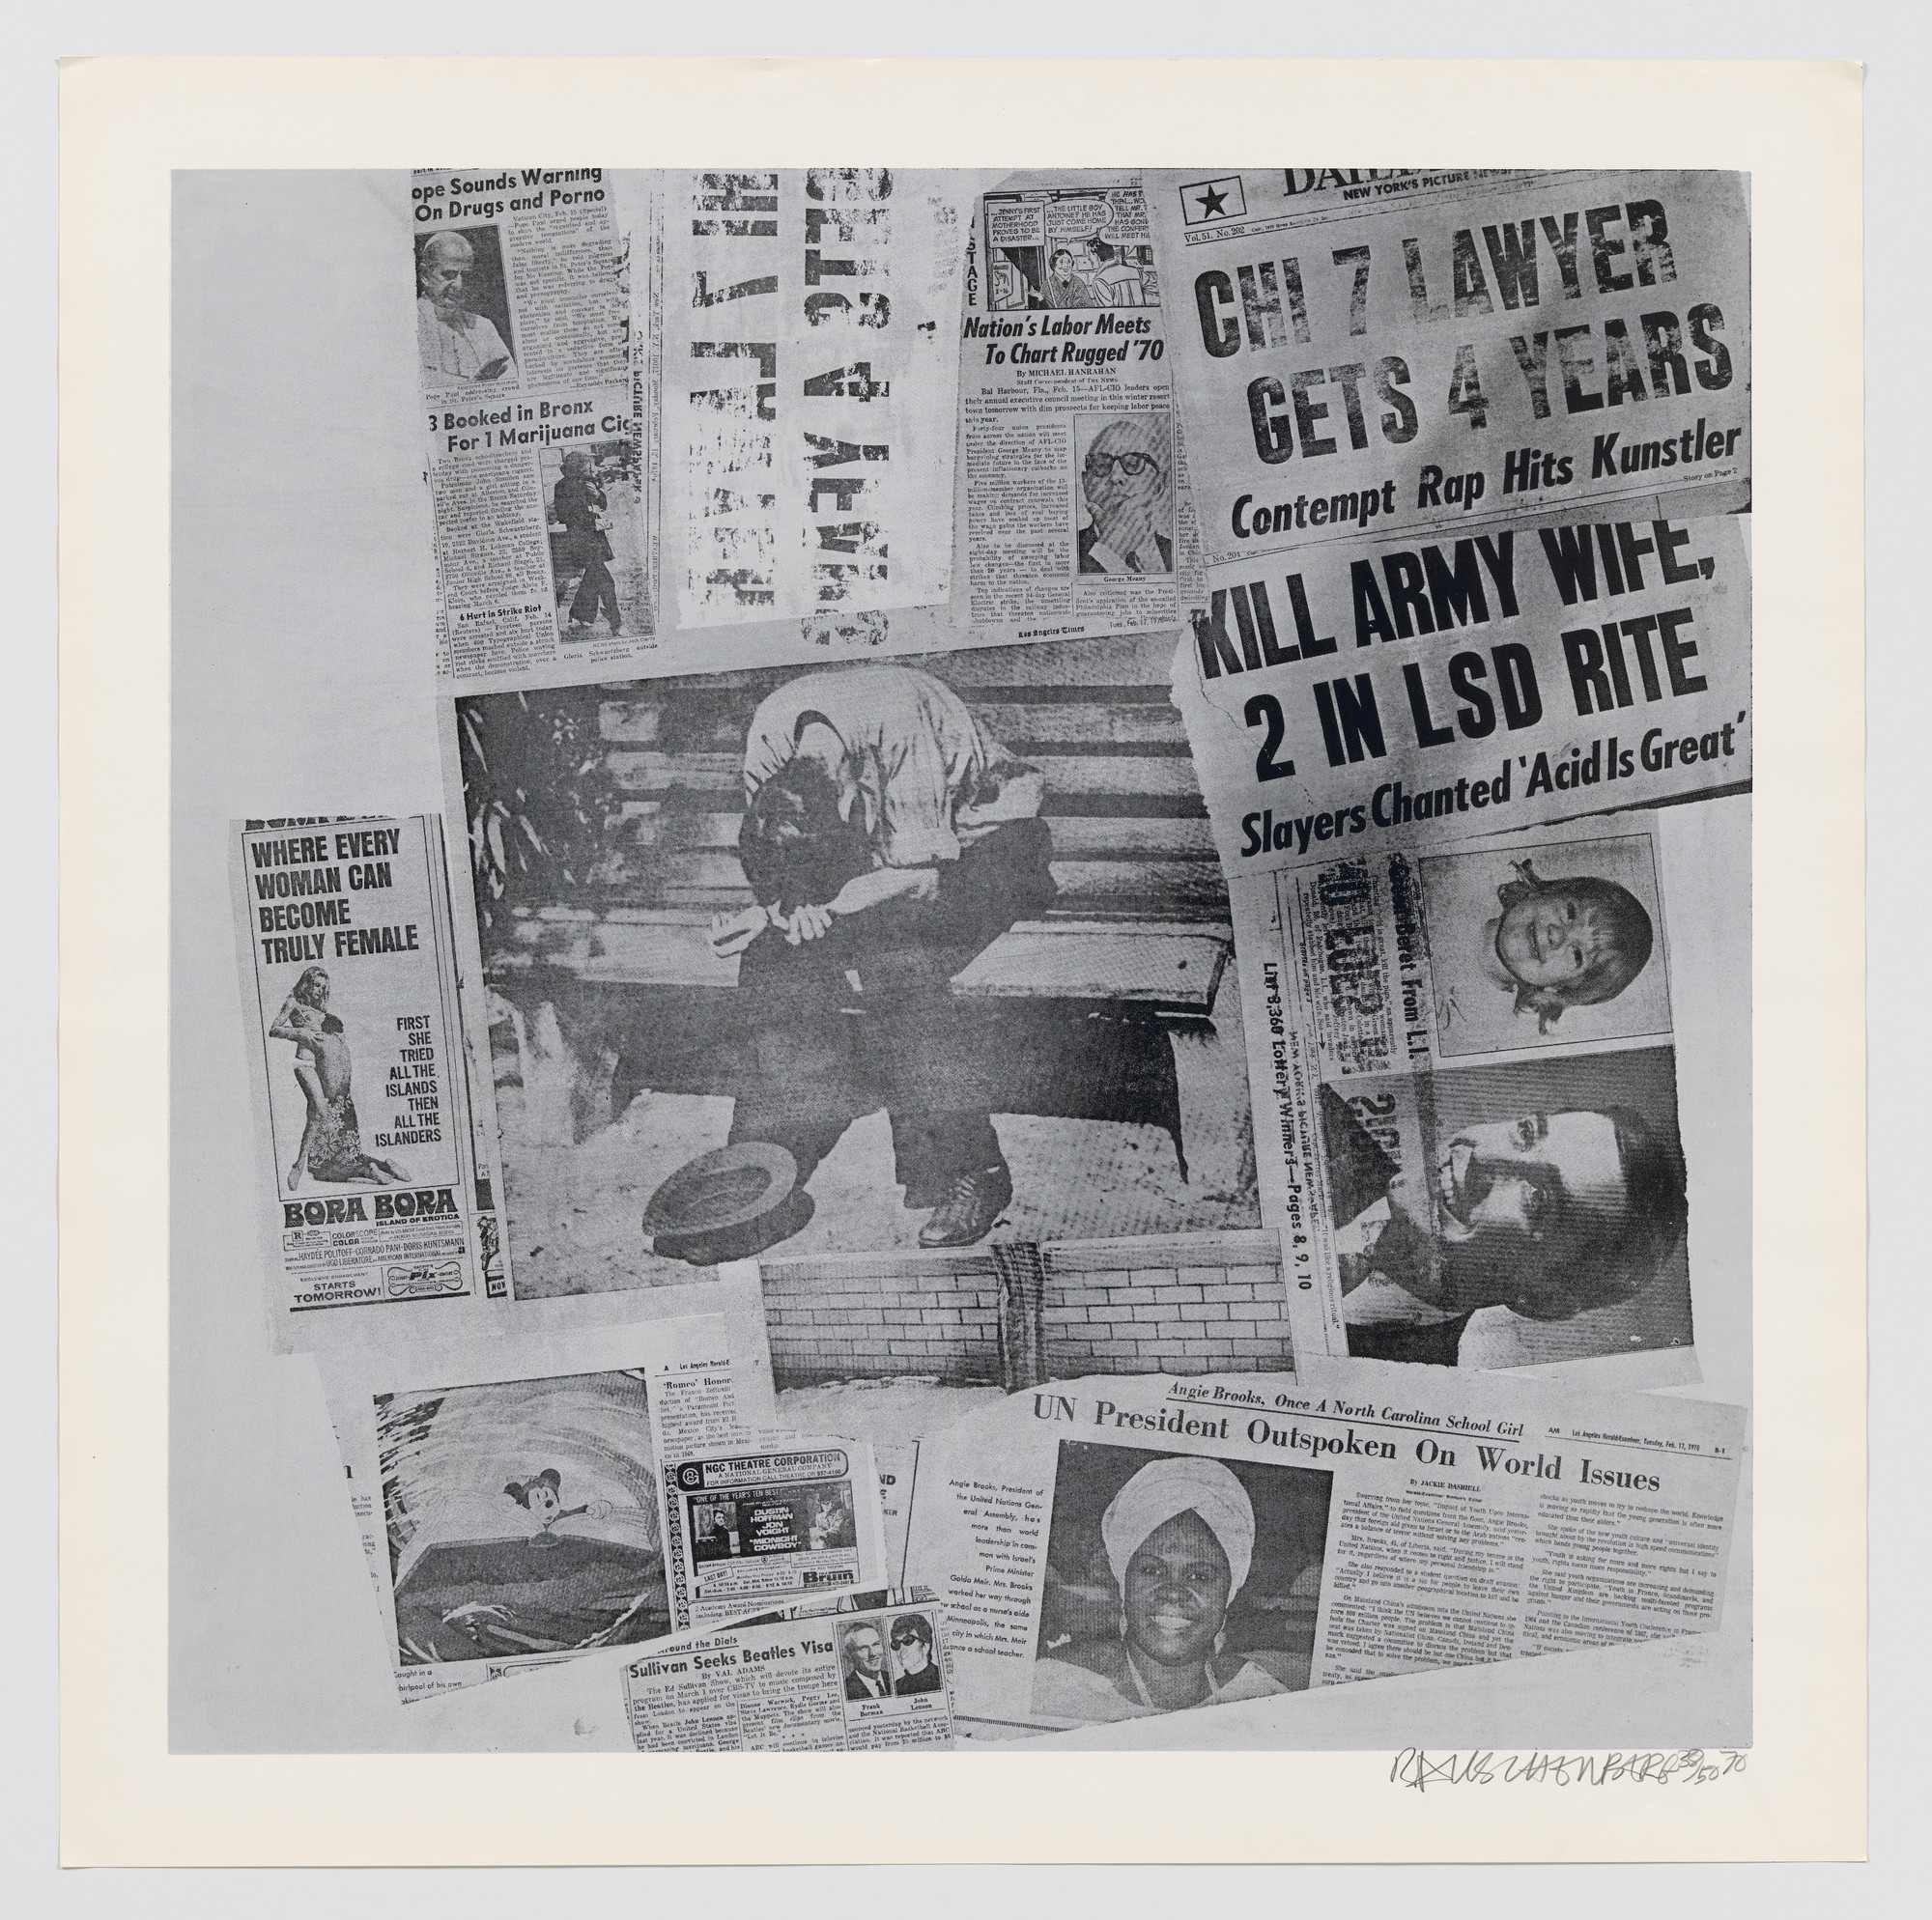 Robert Rauschenberg  Features from Currents  1970 | MoMA